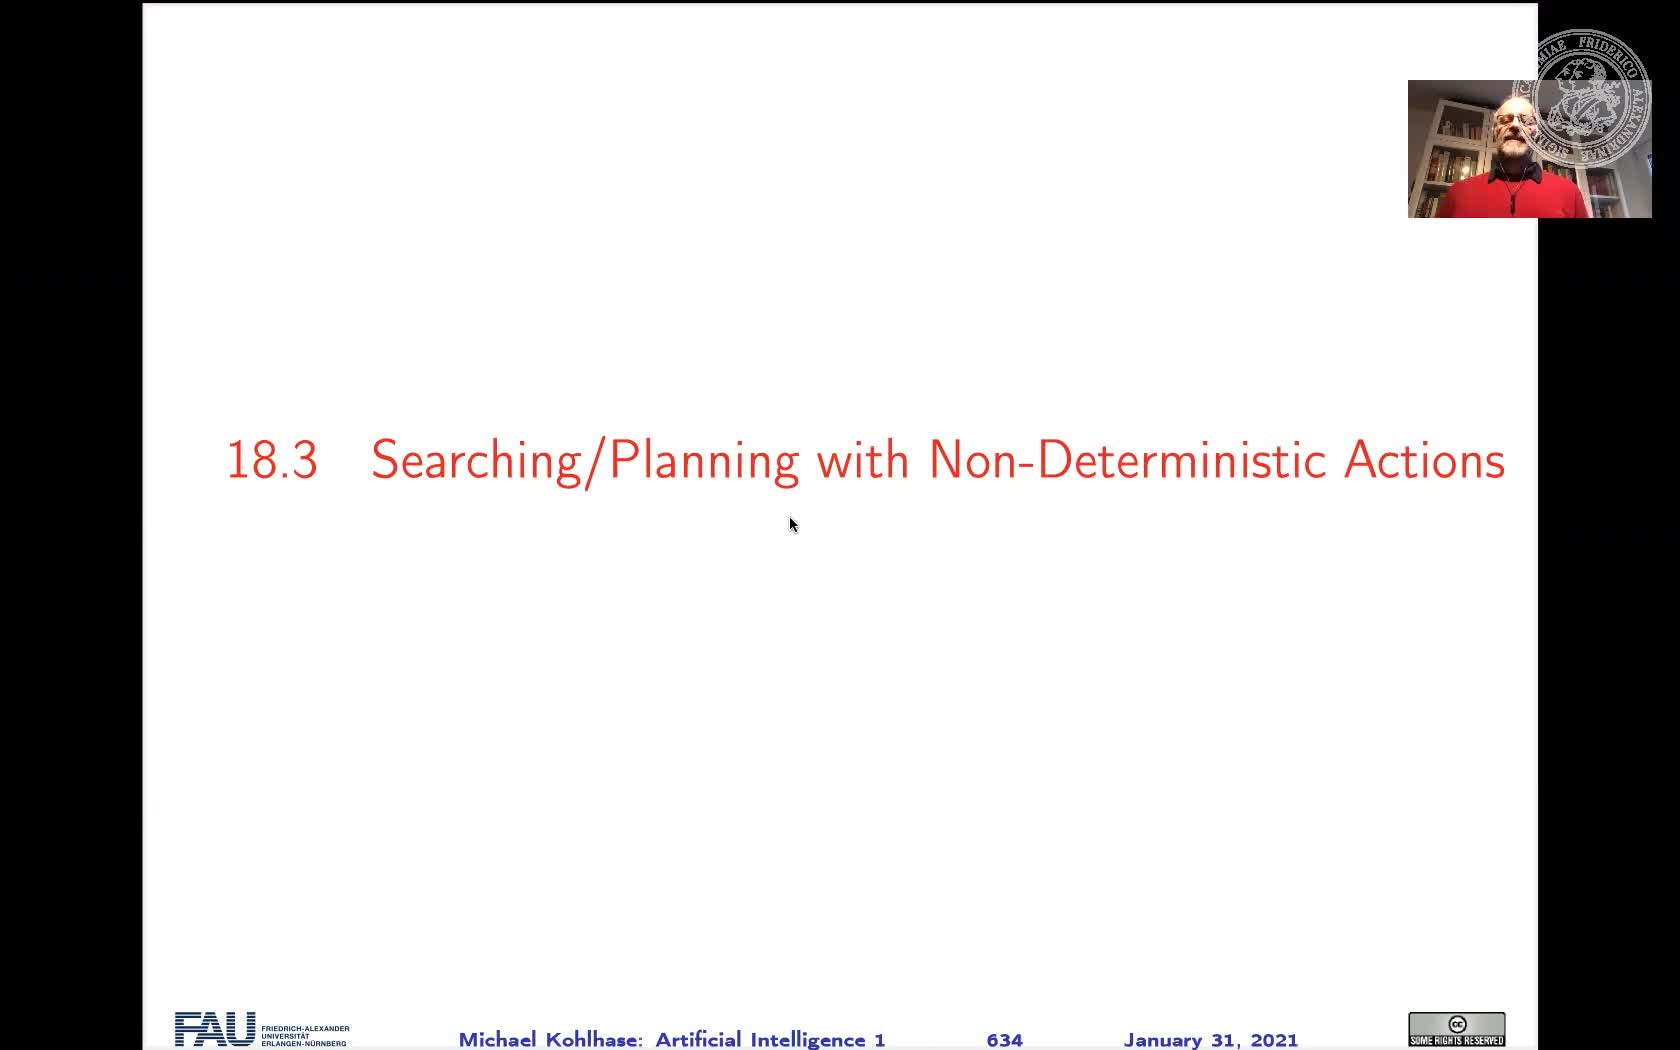 Searching/Planning with Non-Deterministic Actions preview image